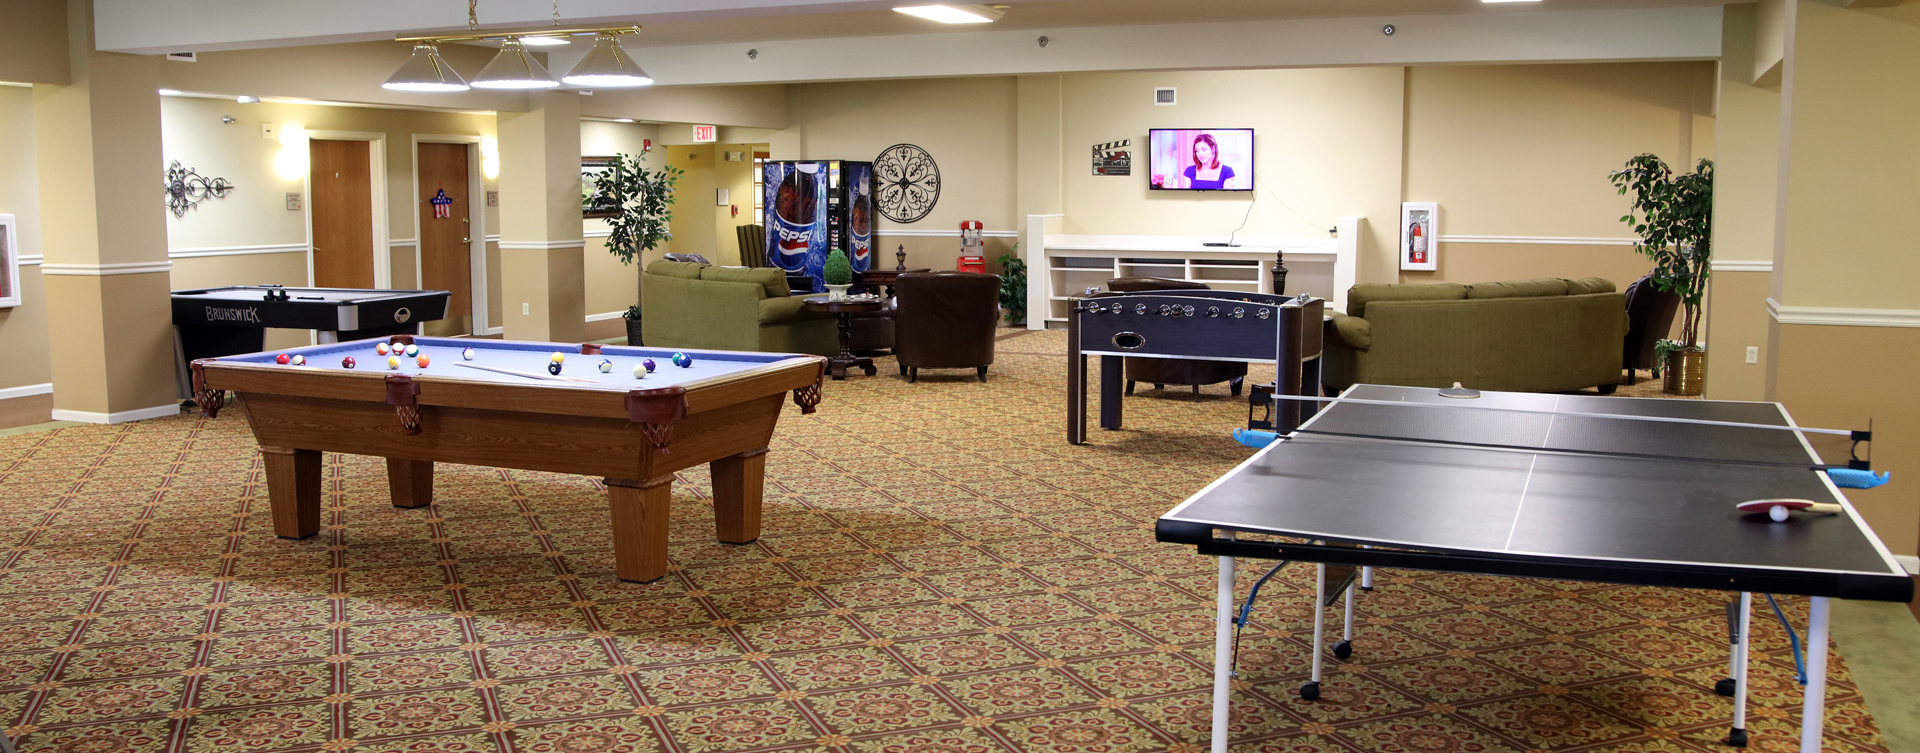 Challenge your friends with one of the games in our activity space at Bickford of Rockford